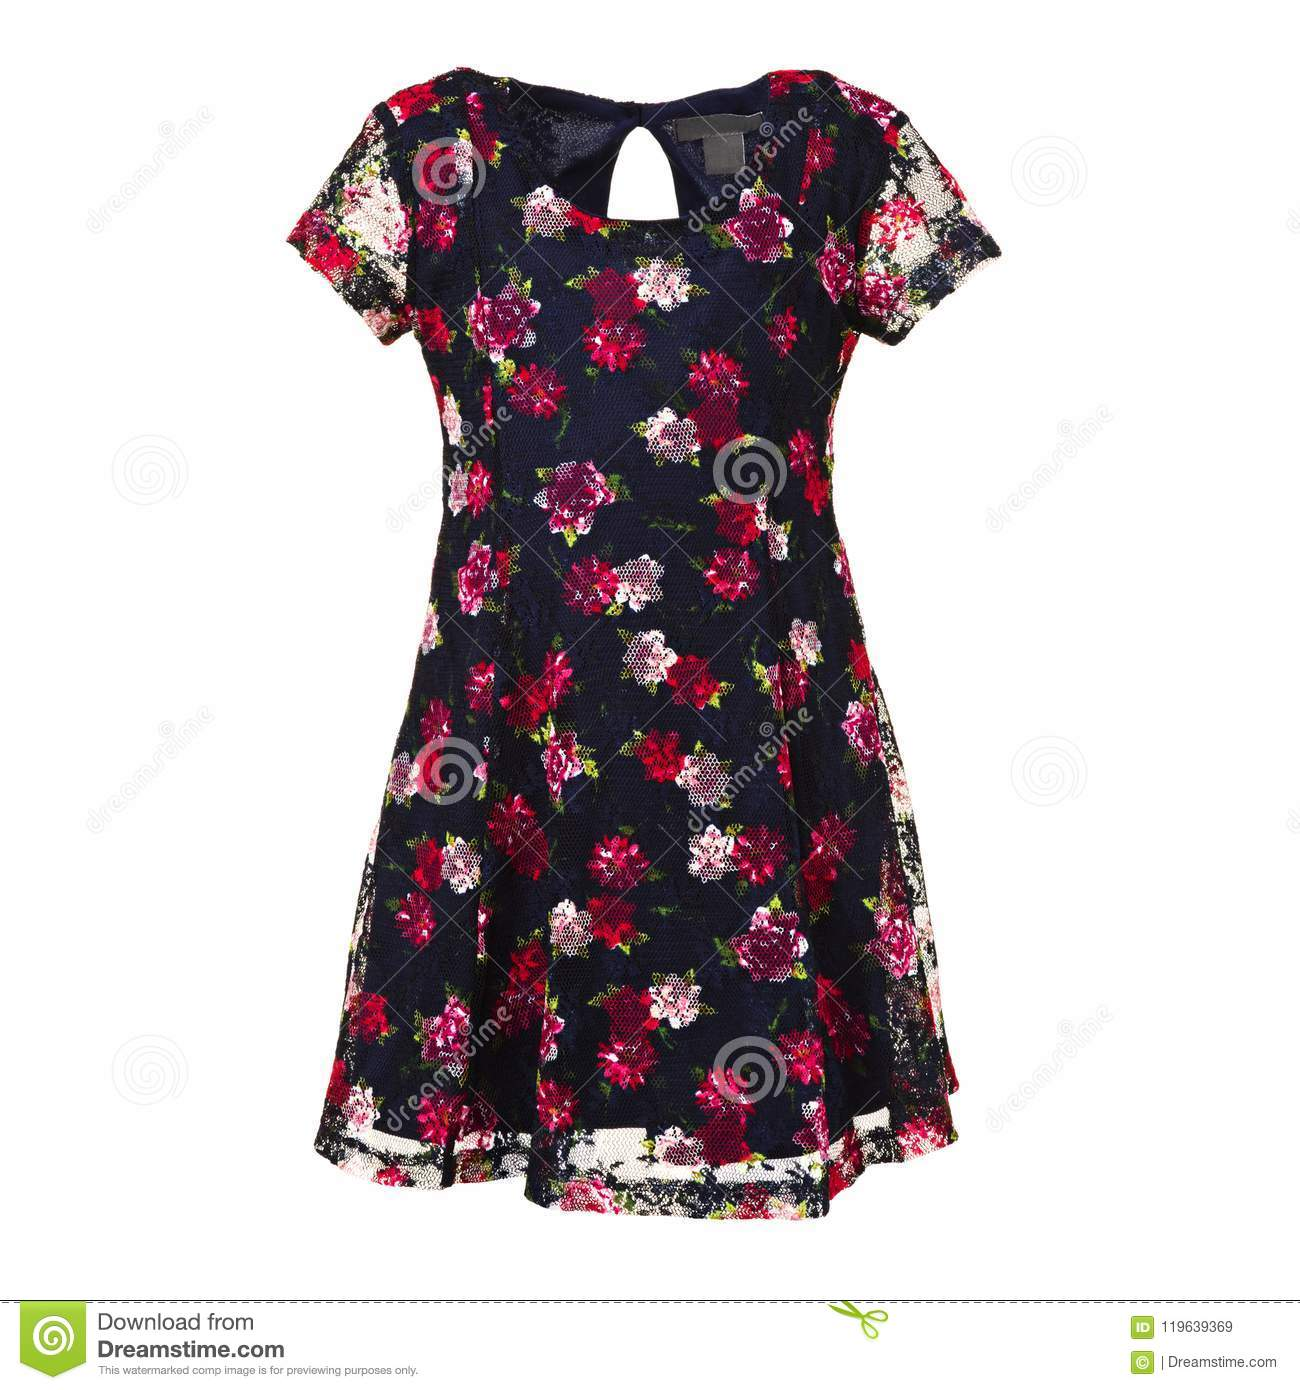 Childs blue dress with red flowers on a white background stock download childs blue dress with red flowers on a white background stock image izmirmasajfo